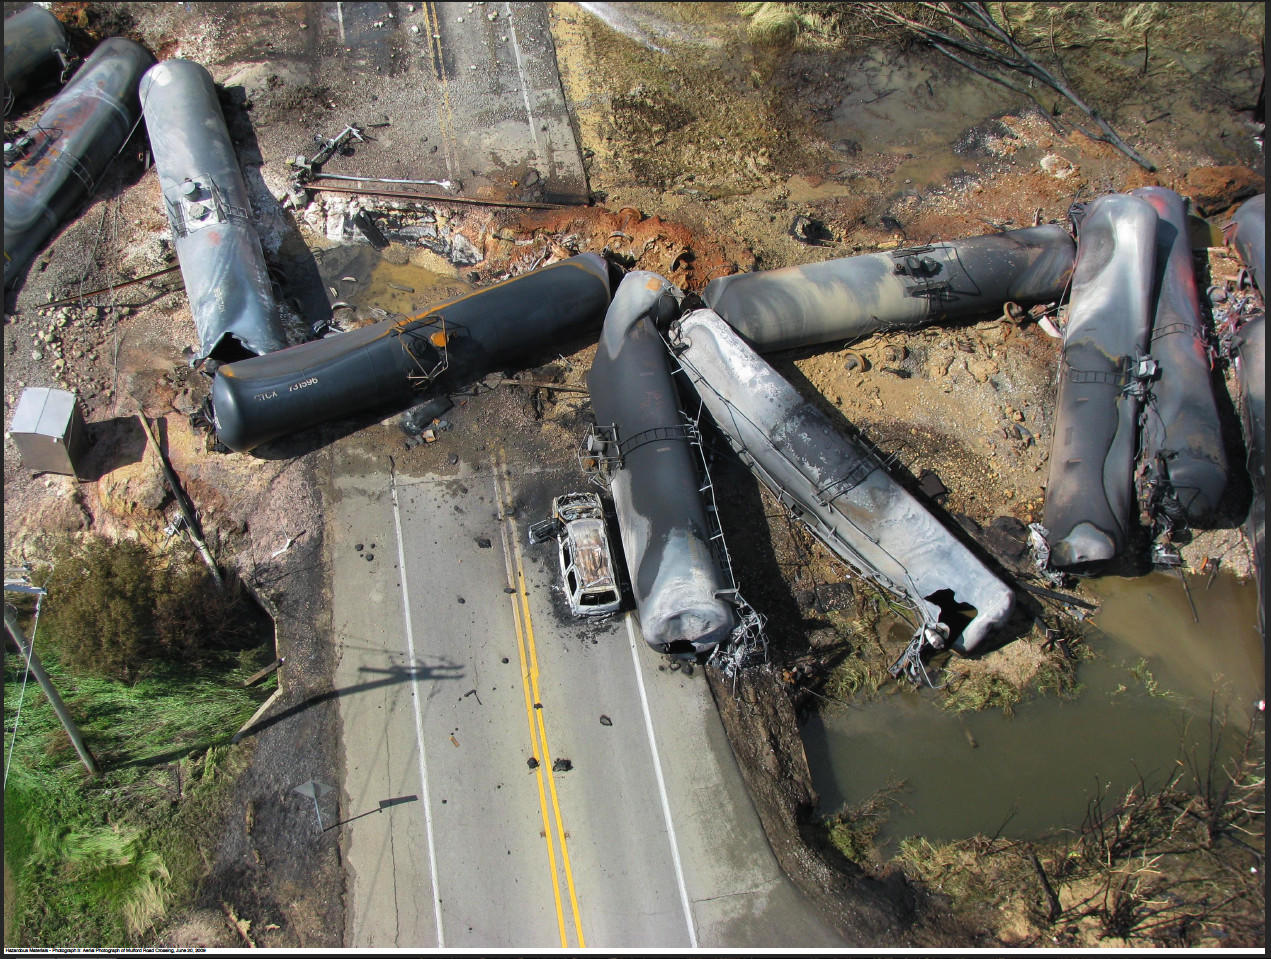 In 2009, a Canadian National freight train hauling 75 tank cars with ethanol derailed and erupted into a massive fireball in Cherry Valley, near Rockford. Although firefighters had about 400 gallons of foam on hand and more on the way, they concluded it wasn't enough to put out the fire.